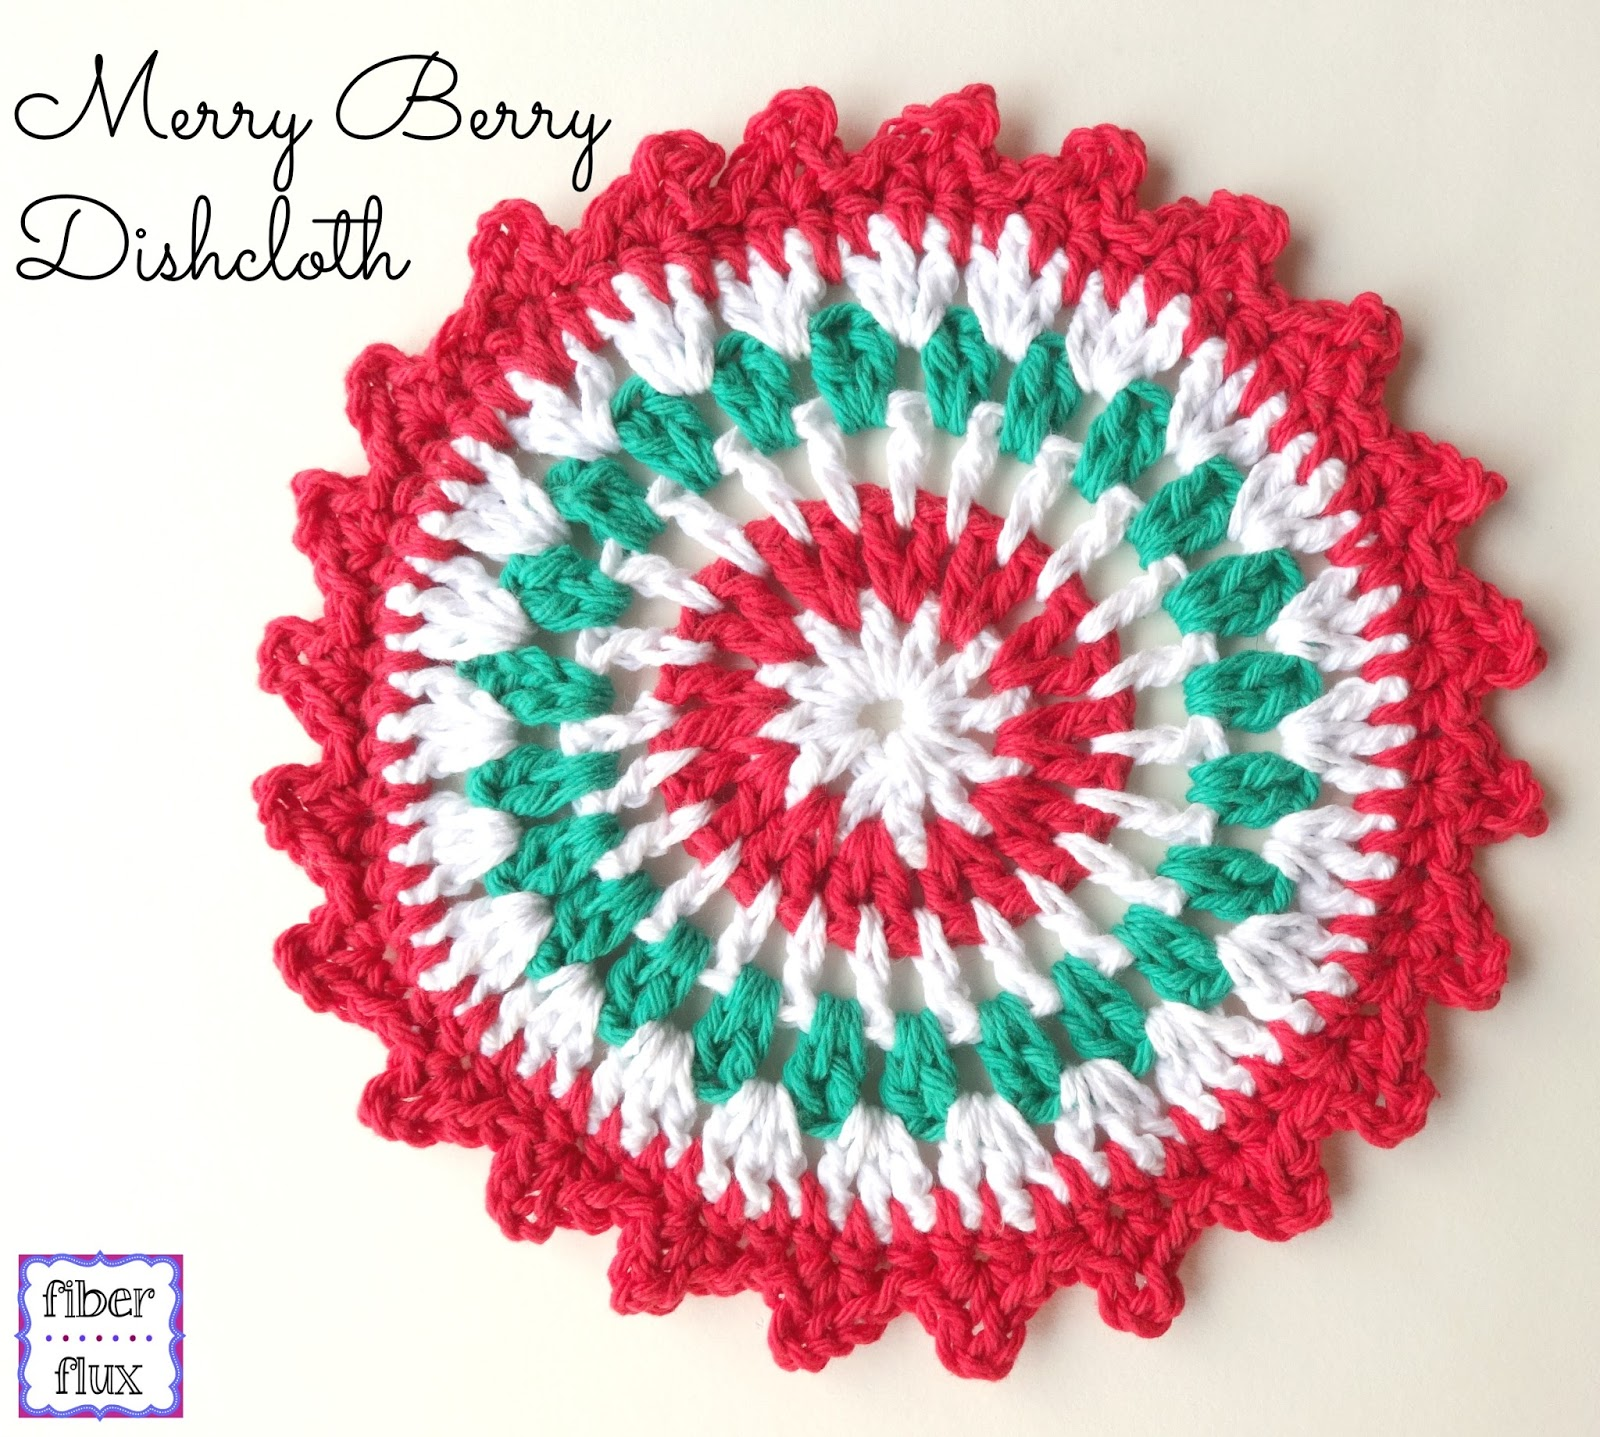 Fiber Flux Free Crochet Patternrry Berry Dishcloth